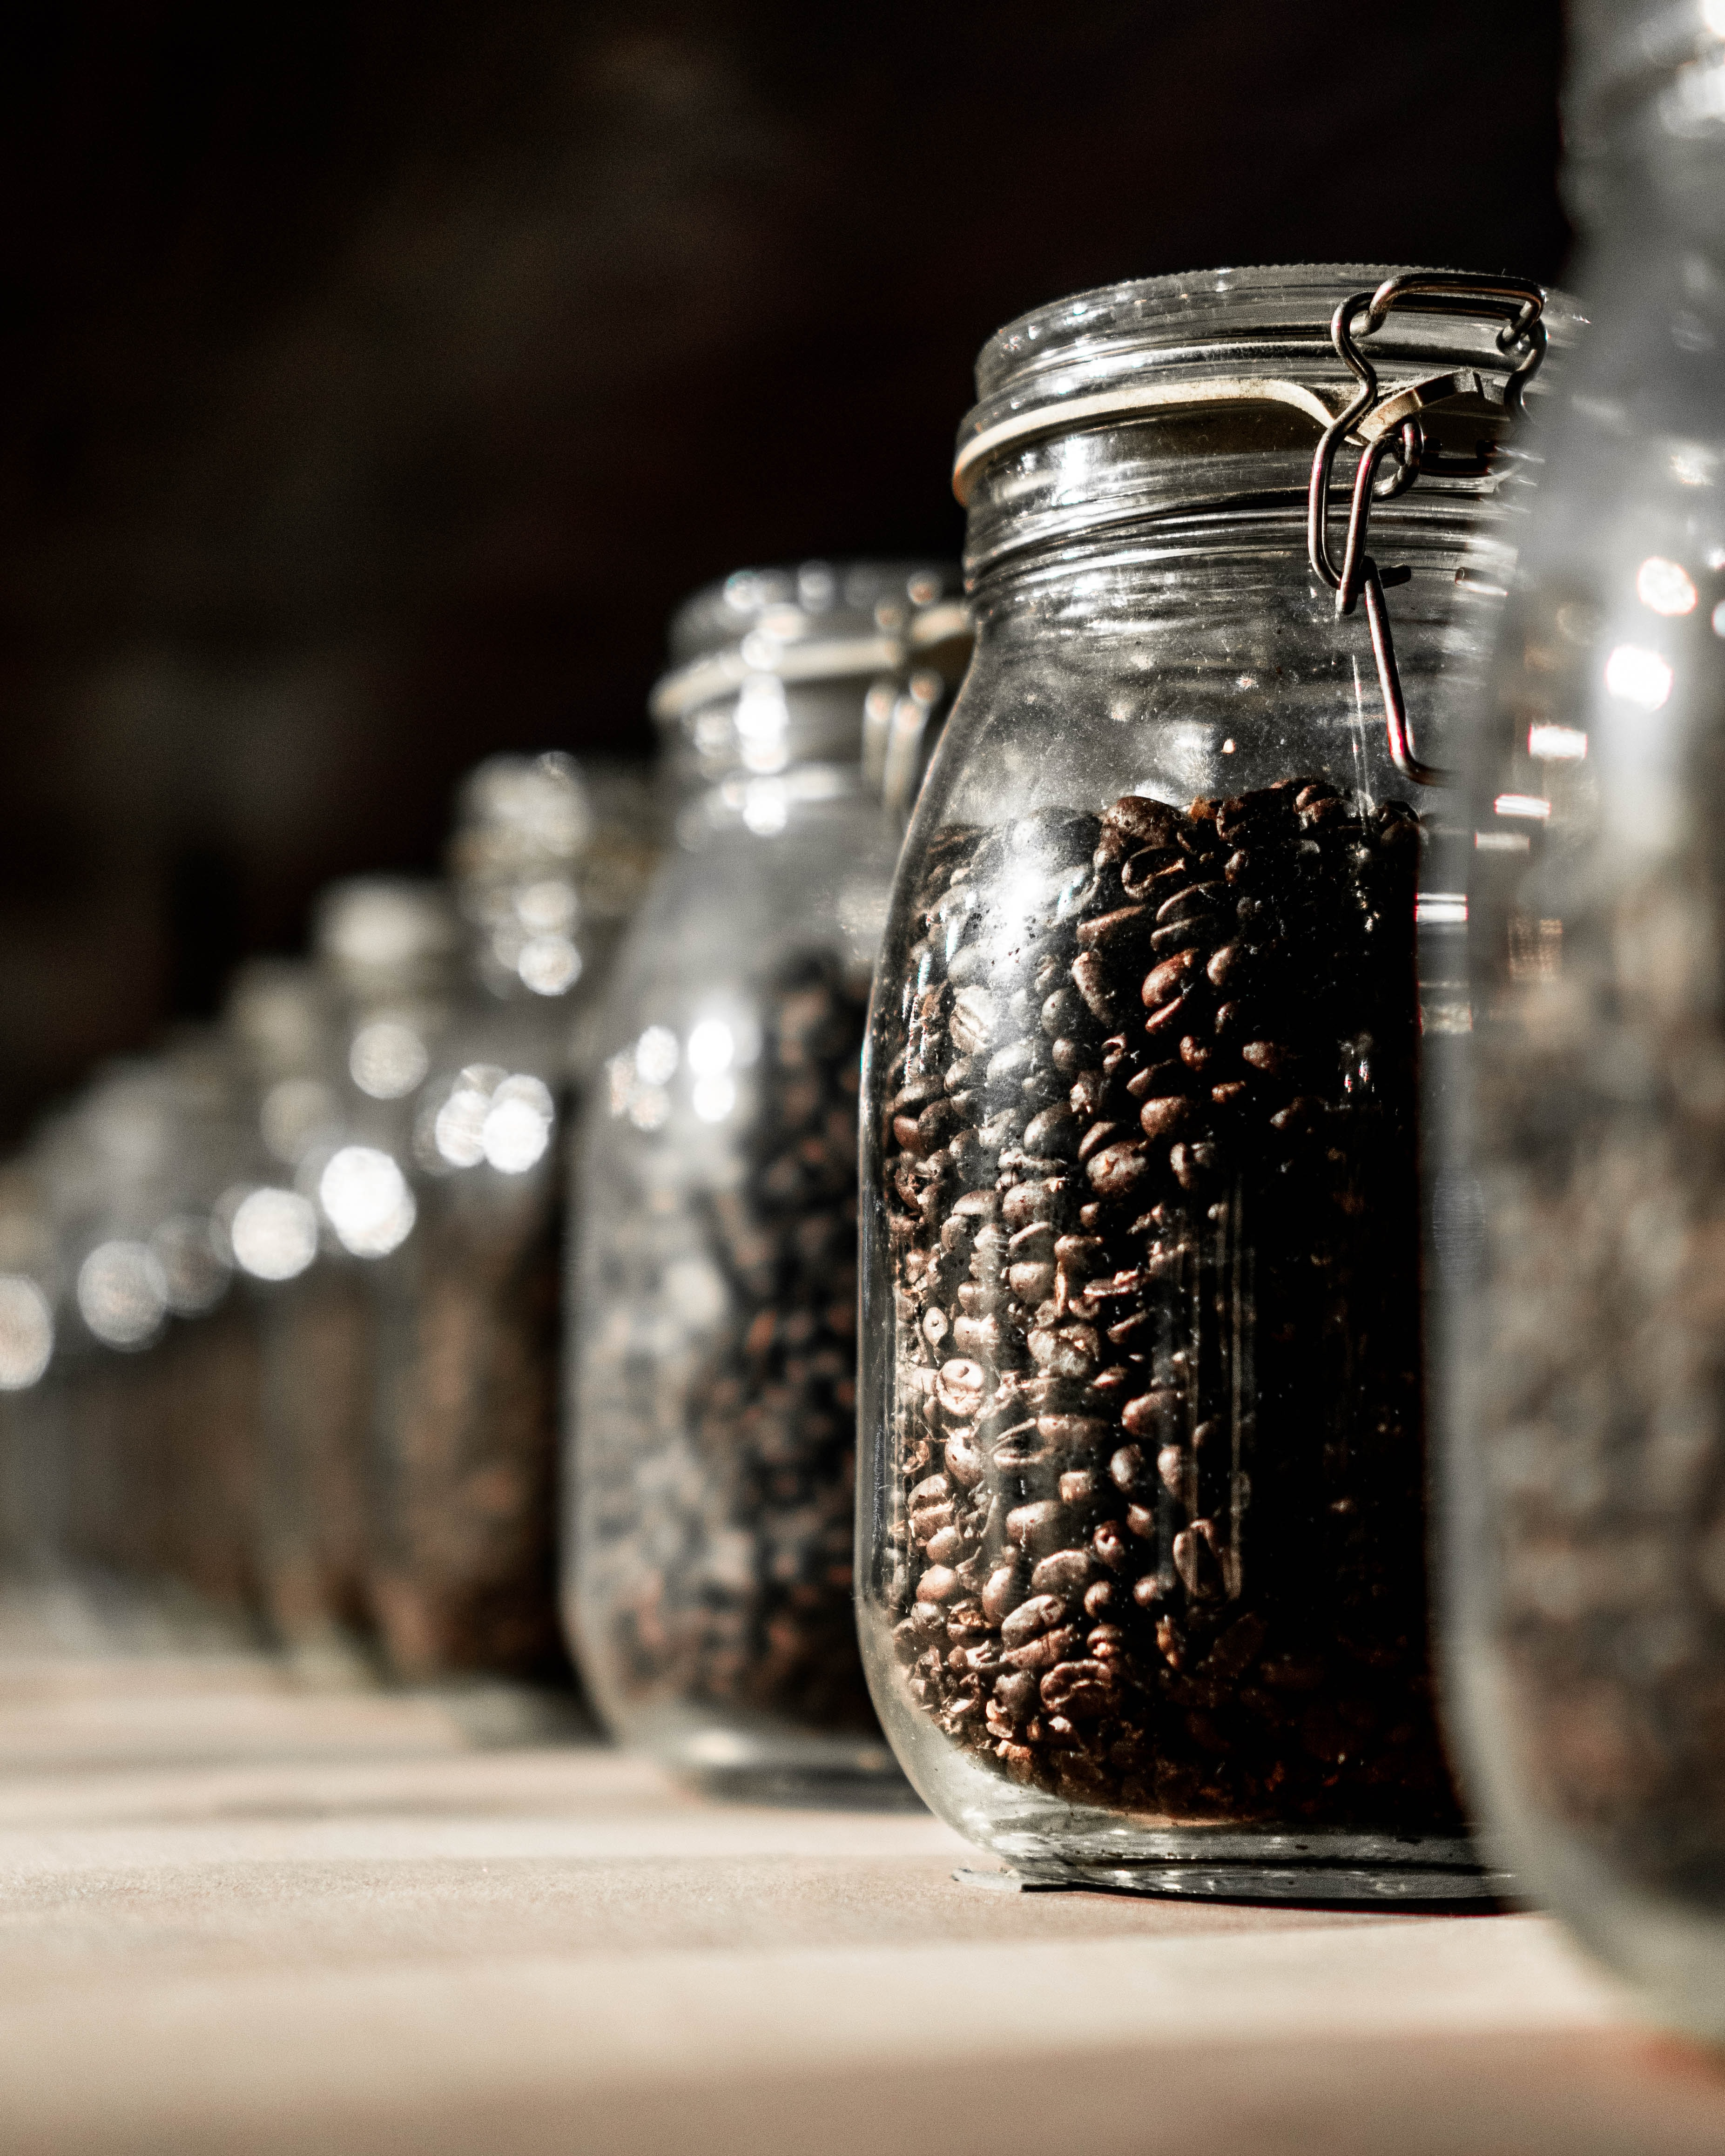 clear glass jar filled with coffee bean lot